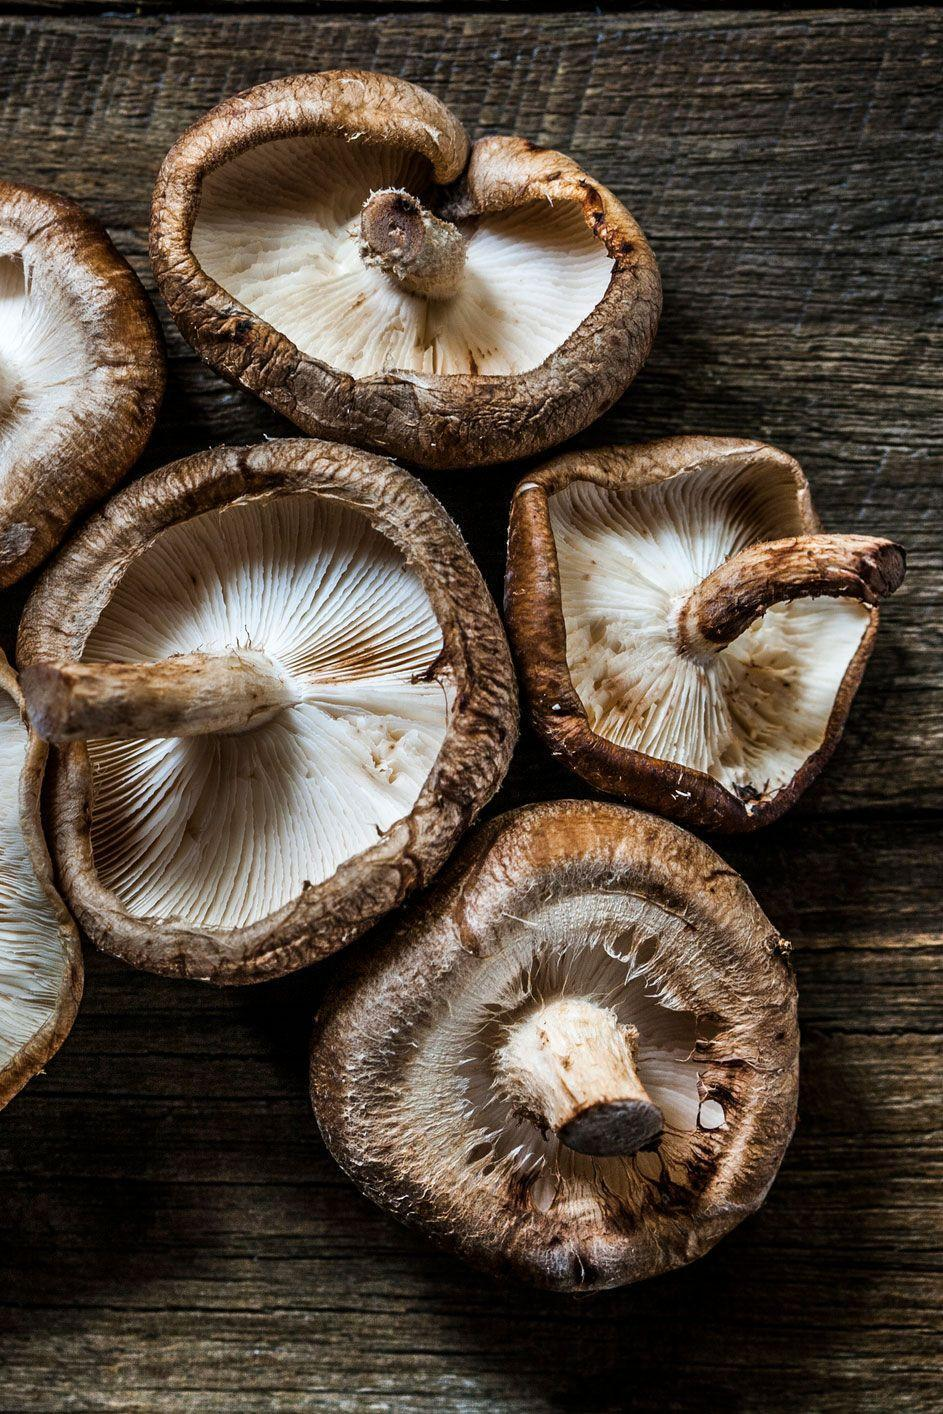 """<p>According to <a href=""""https://www.healthline.com/nutrition/shiitake-mushrooms#section2"""" rel=""""nofollow noopener"""" target=""""_blank"""" data-ylk=""""slk:Healthline"""" class=""""link rapid-noclick-resp"""">Healthline</a>, shiitake mushrooms contain polysaccharides, terpenoids, sterols, and lipids, which have been linked to having cholesterol-lowering and anti-cancer effects.</p><p><strong>Recipe to try:</strong> <a href=""""https://www.womansday.com/food-recipes/food-drinks/recipes/a37558/kale-mushrooms-recipe-rbk1011/"""" rel=""""nofollow noopener"""" target=""""_blank"""" data-ylk=""""slk:Kale with Mushrooms"""" class=""""link rapid-noclick-resp"""">Kale with Mushrooms</a> </p>"""